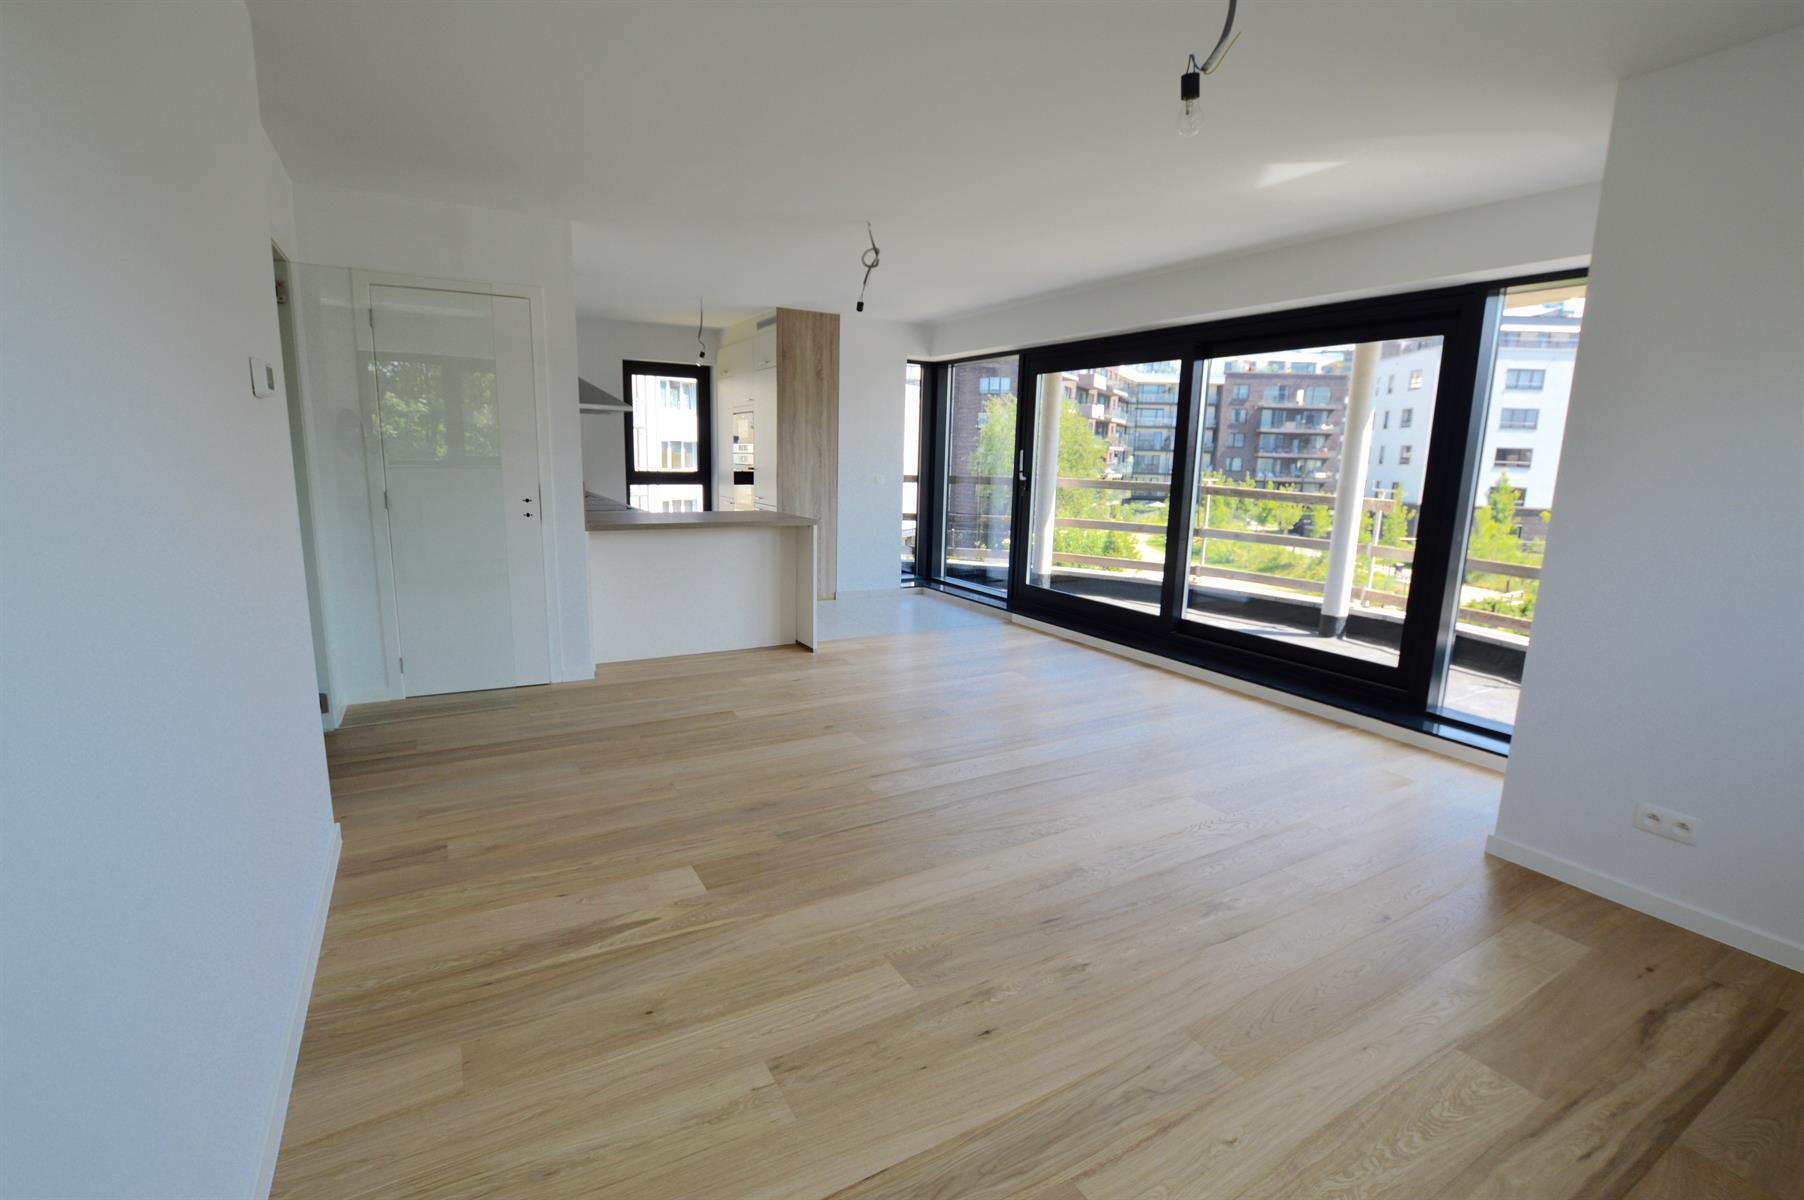 Appartement - Evere - #3999685-1